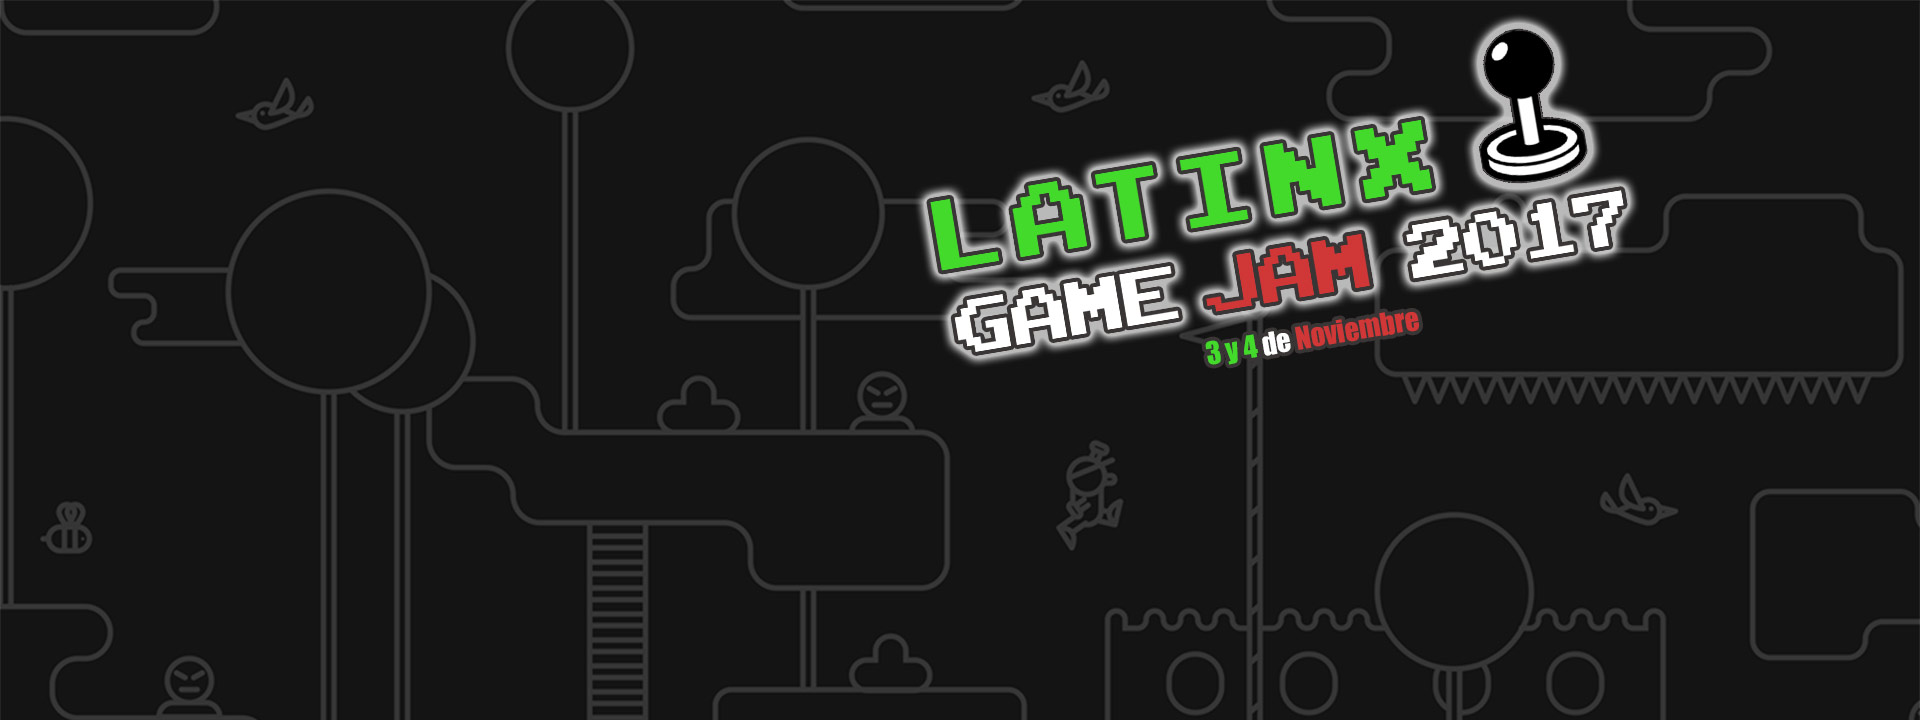 Retro graphics with joystick and Latinx Game Jam event logo